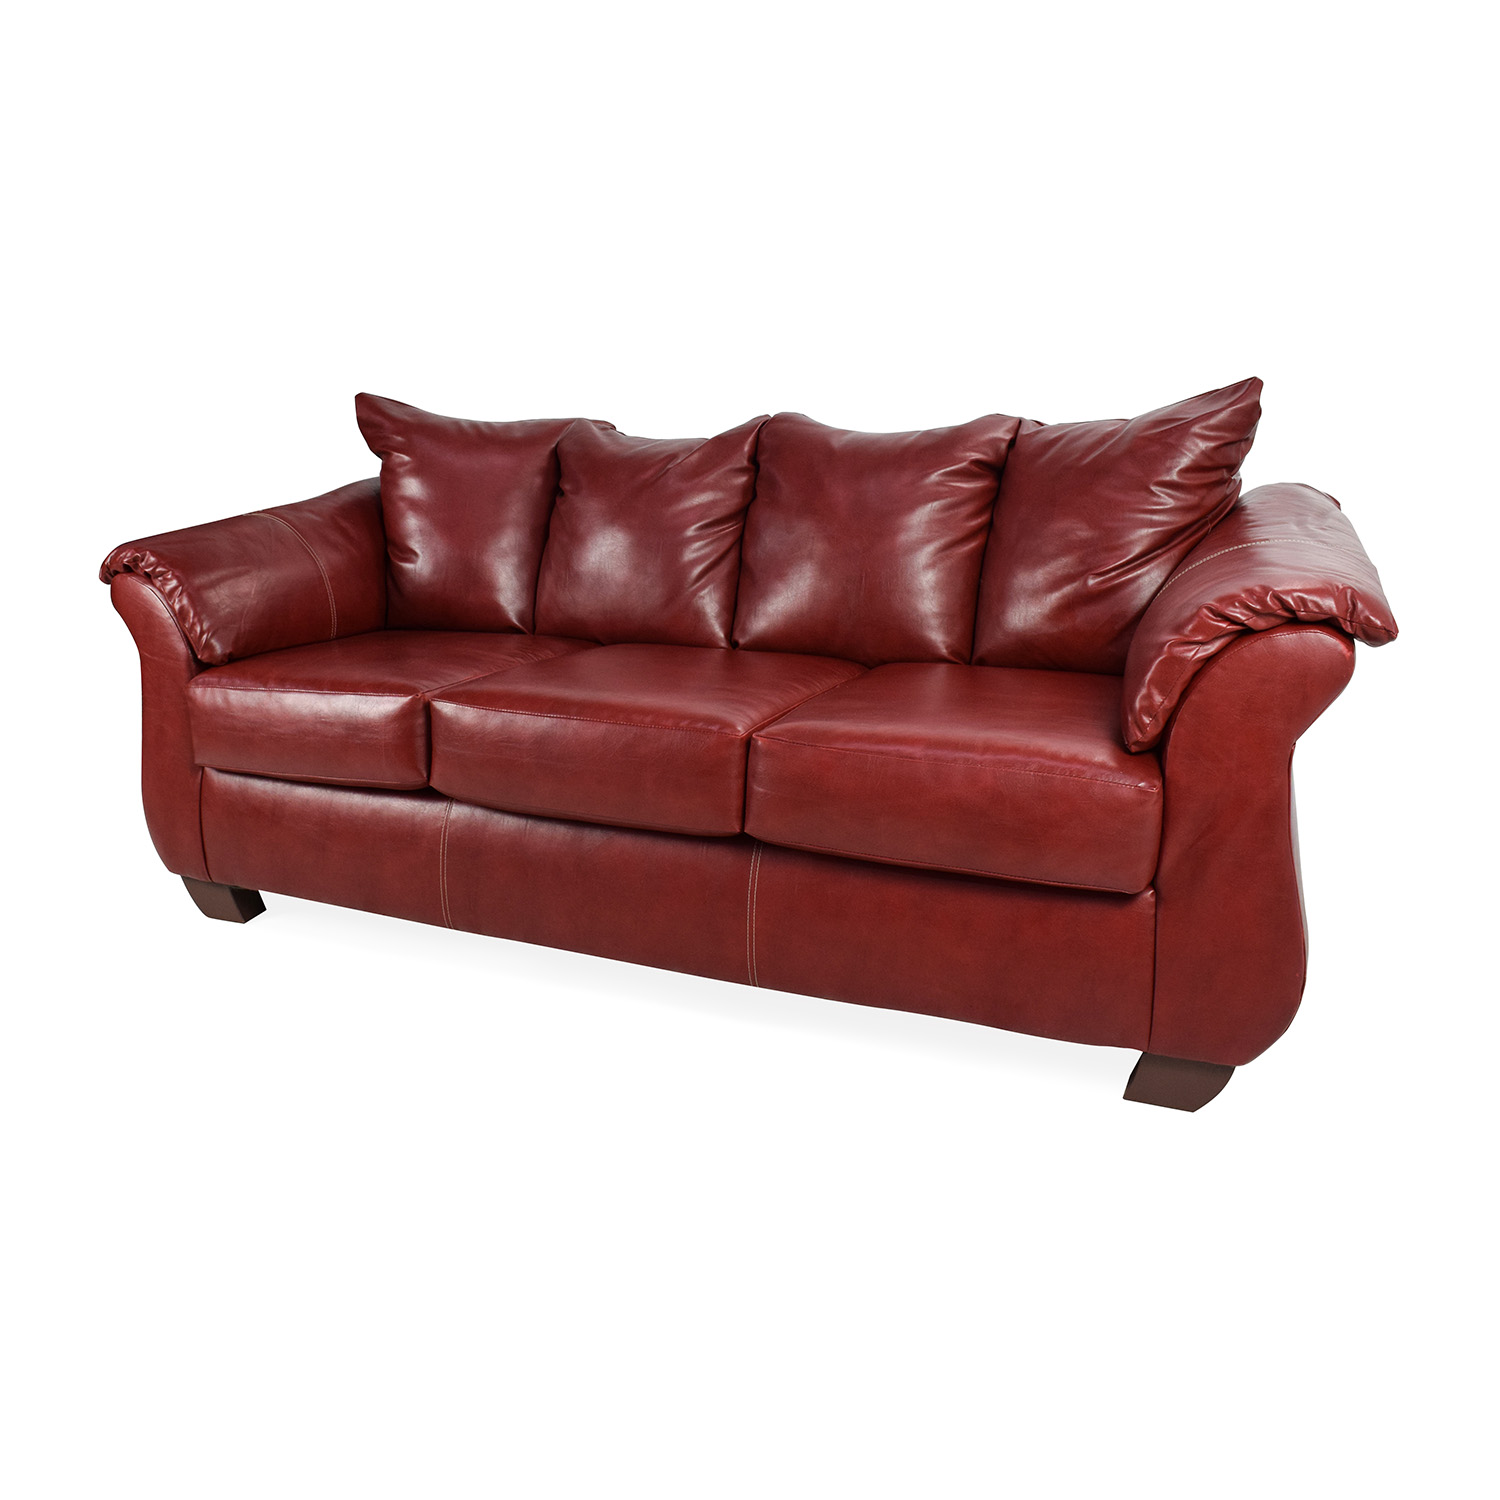 red leather sofas and chairs organic sofa canada 72 off haymarket sierra